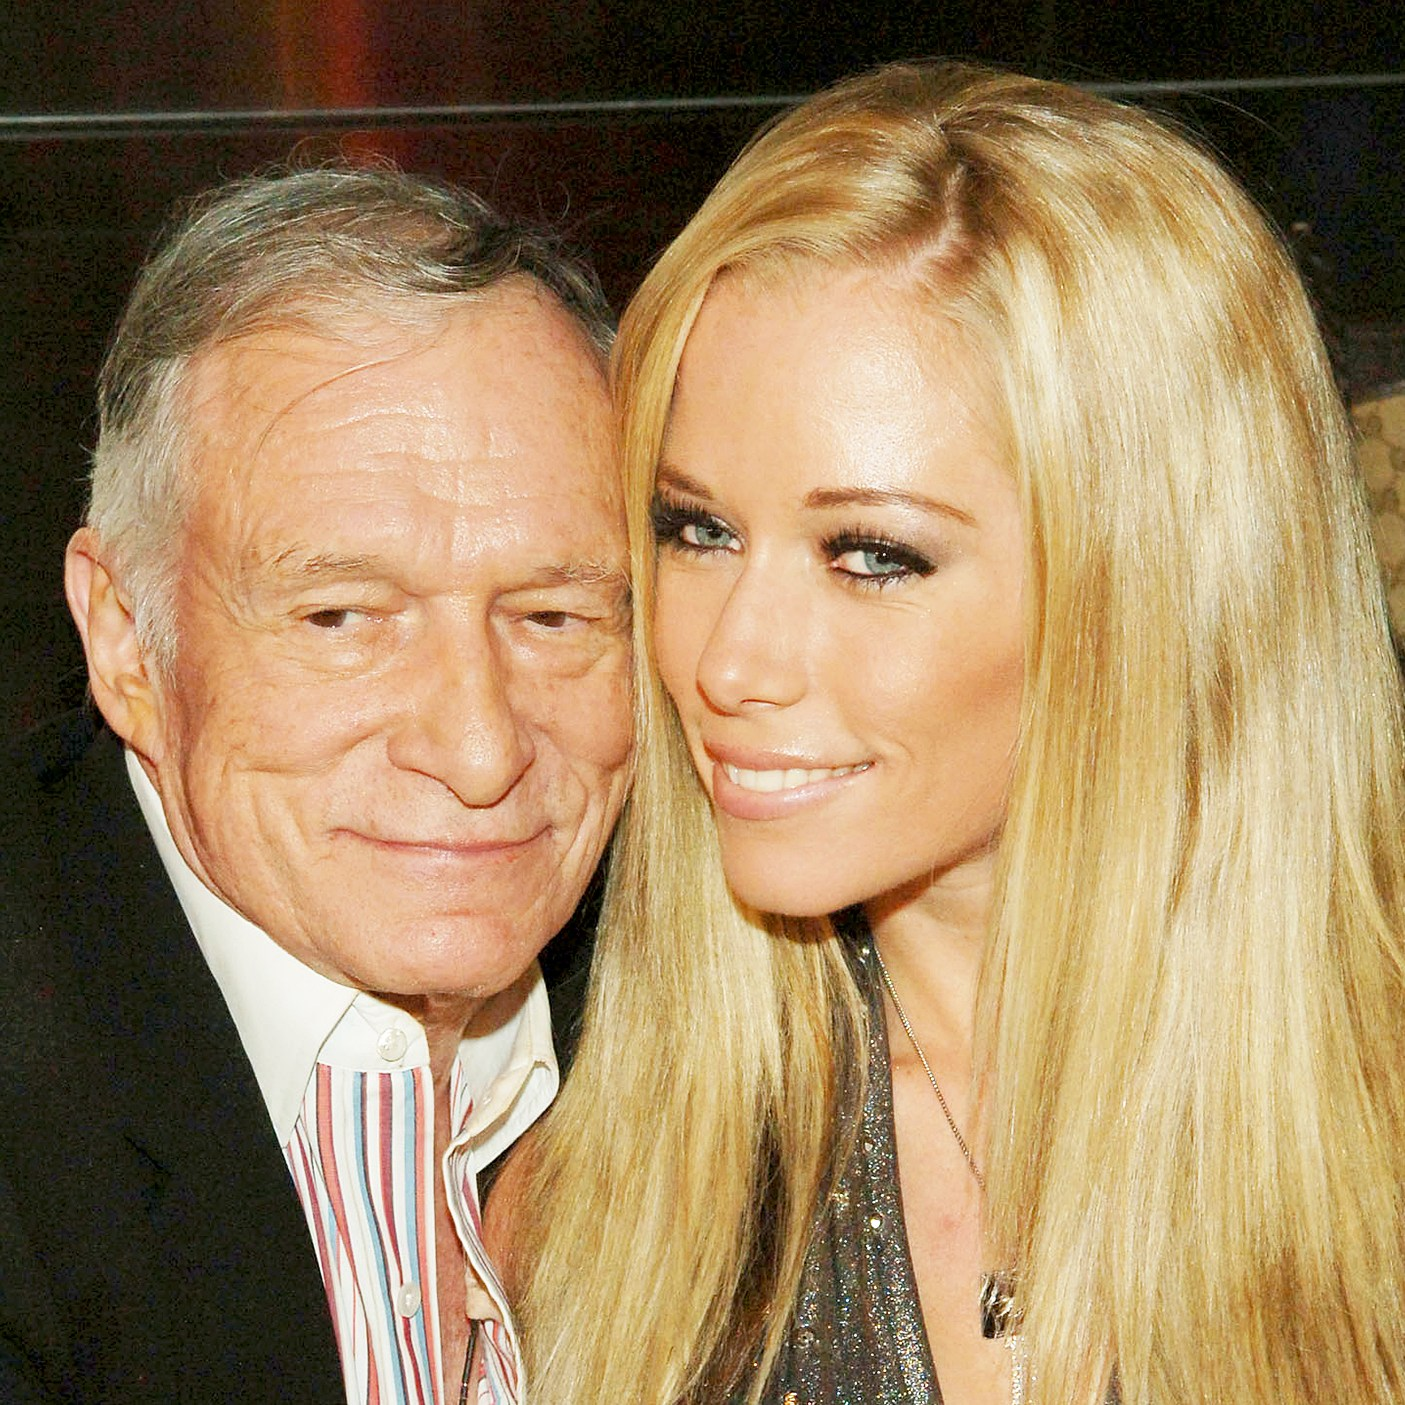 Hugh Hefner and Kendra Wilkinson